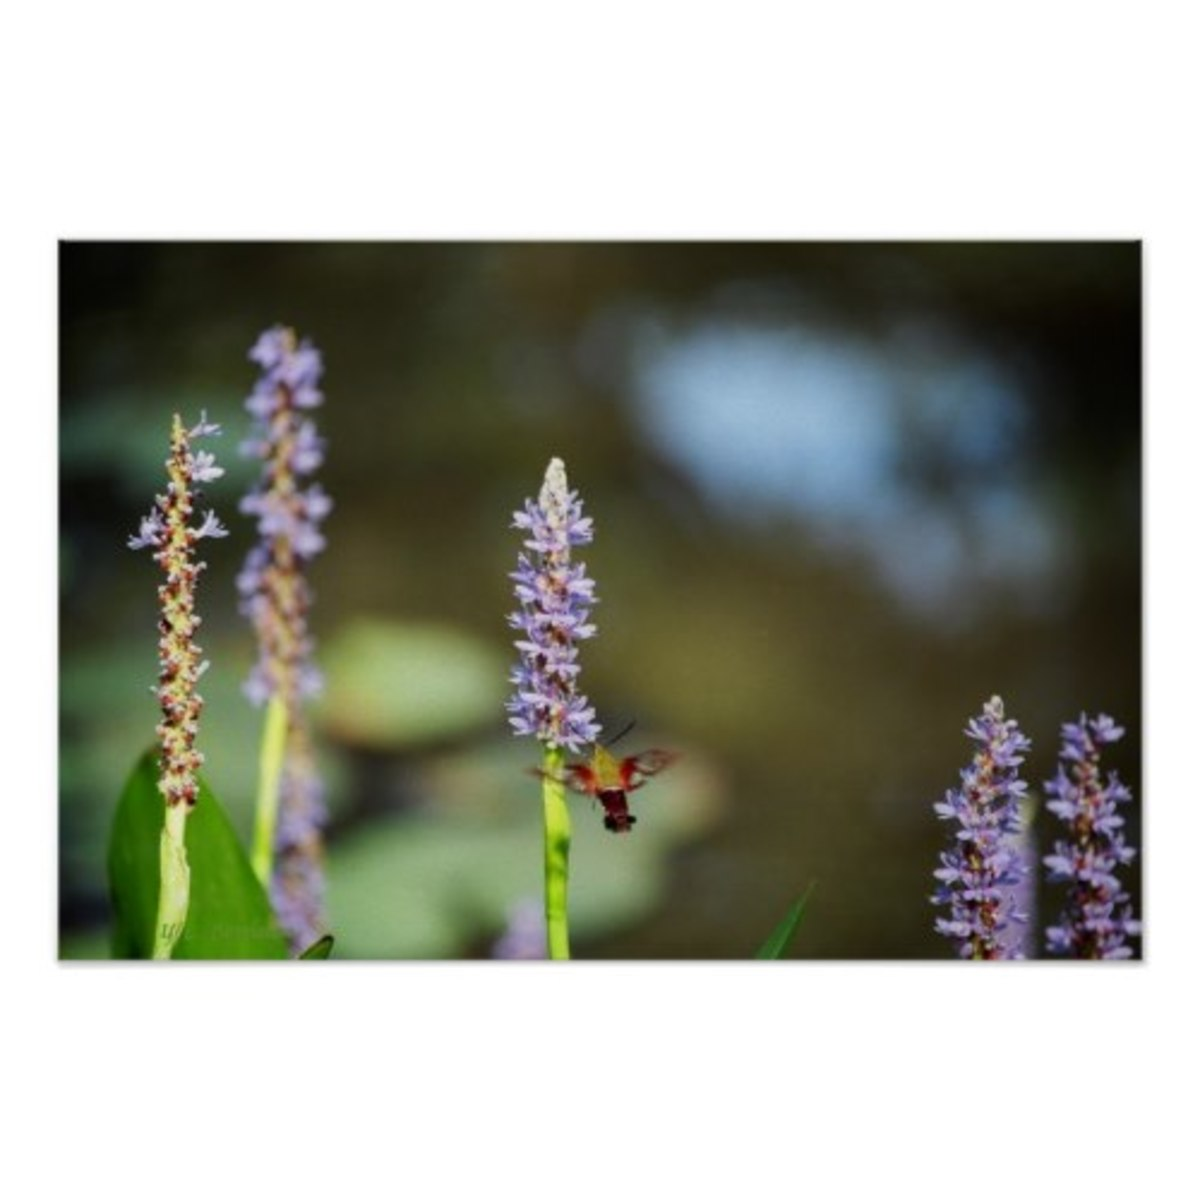 Pickerel weed is a versatile native plant that grows in wet areas. It is a favorite of many pollinators including hummingbirds, butterflies, bees and moths.